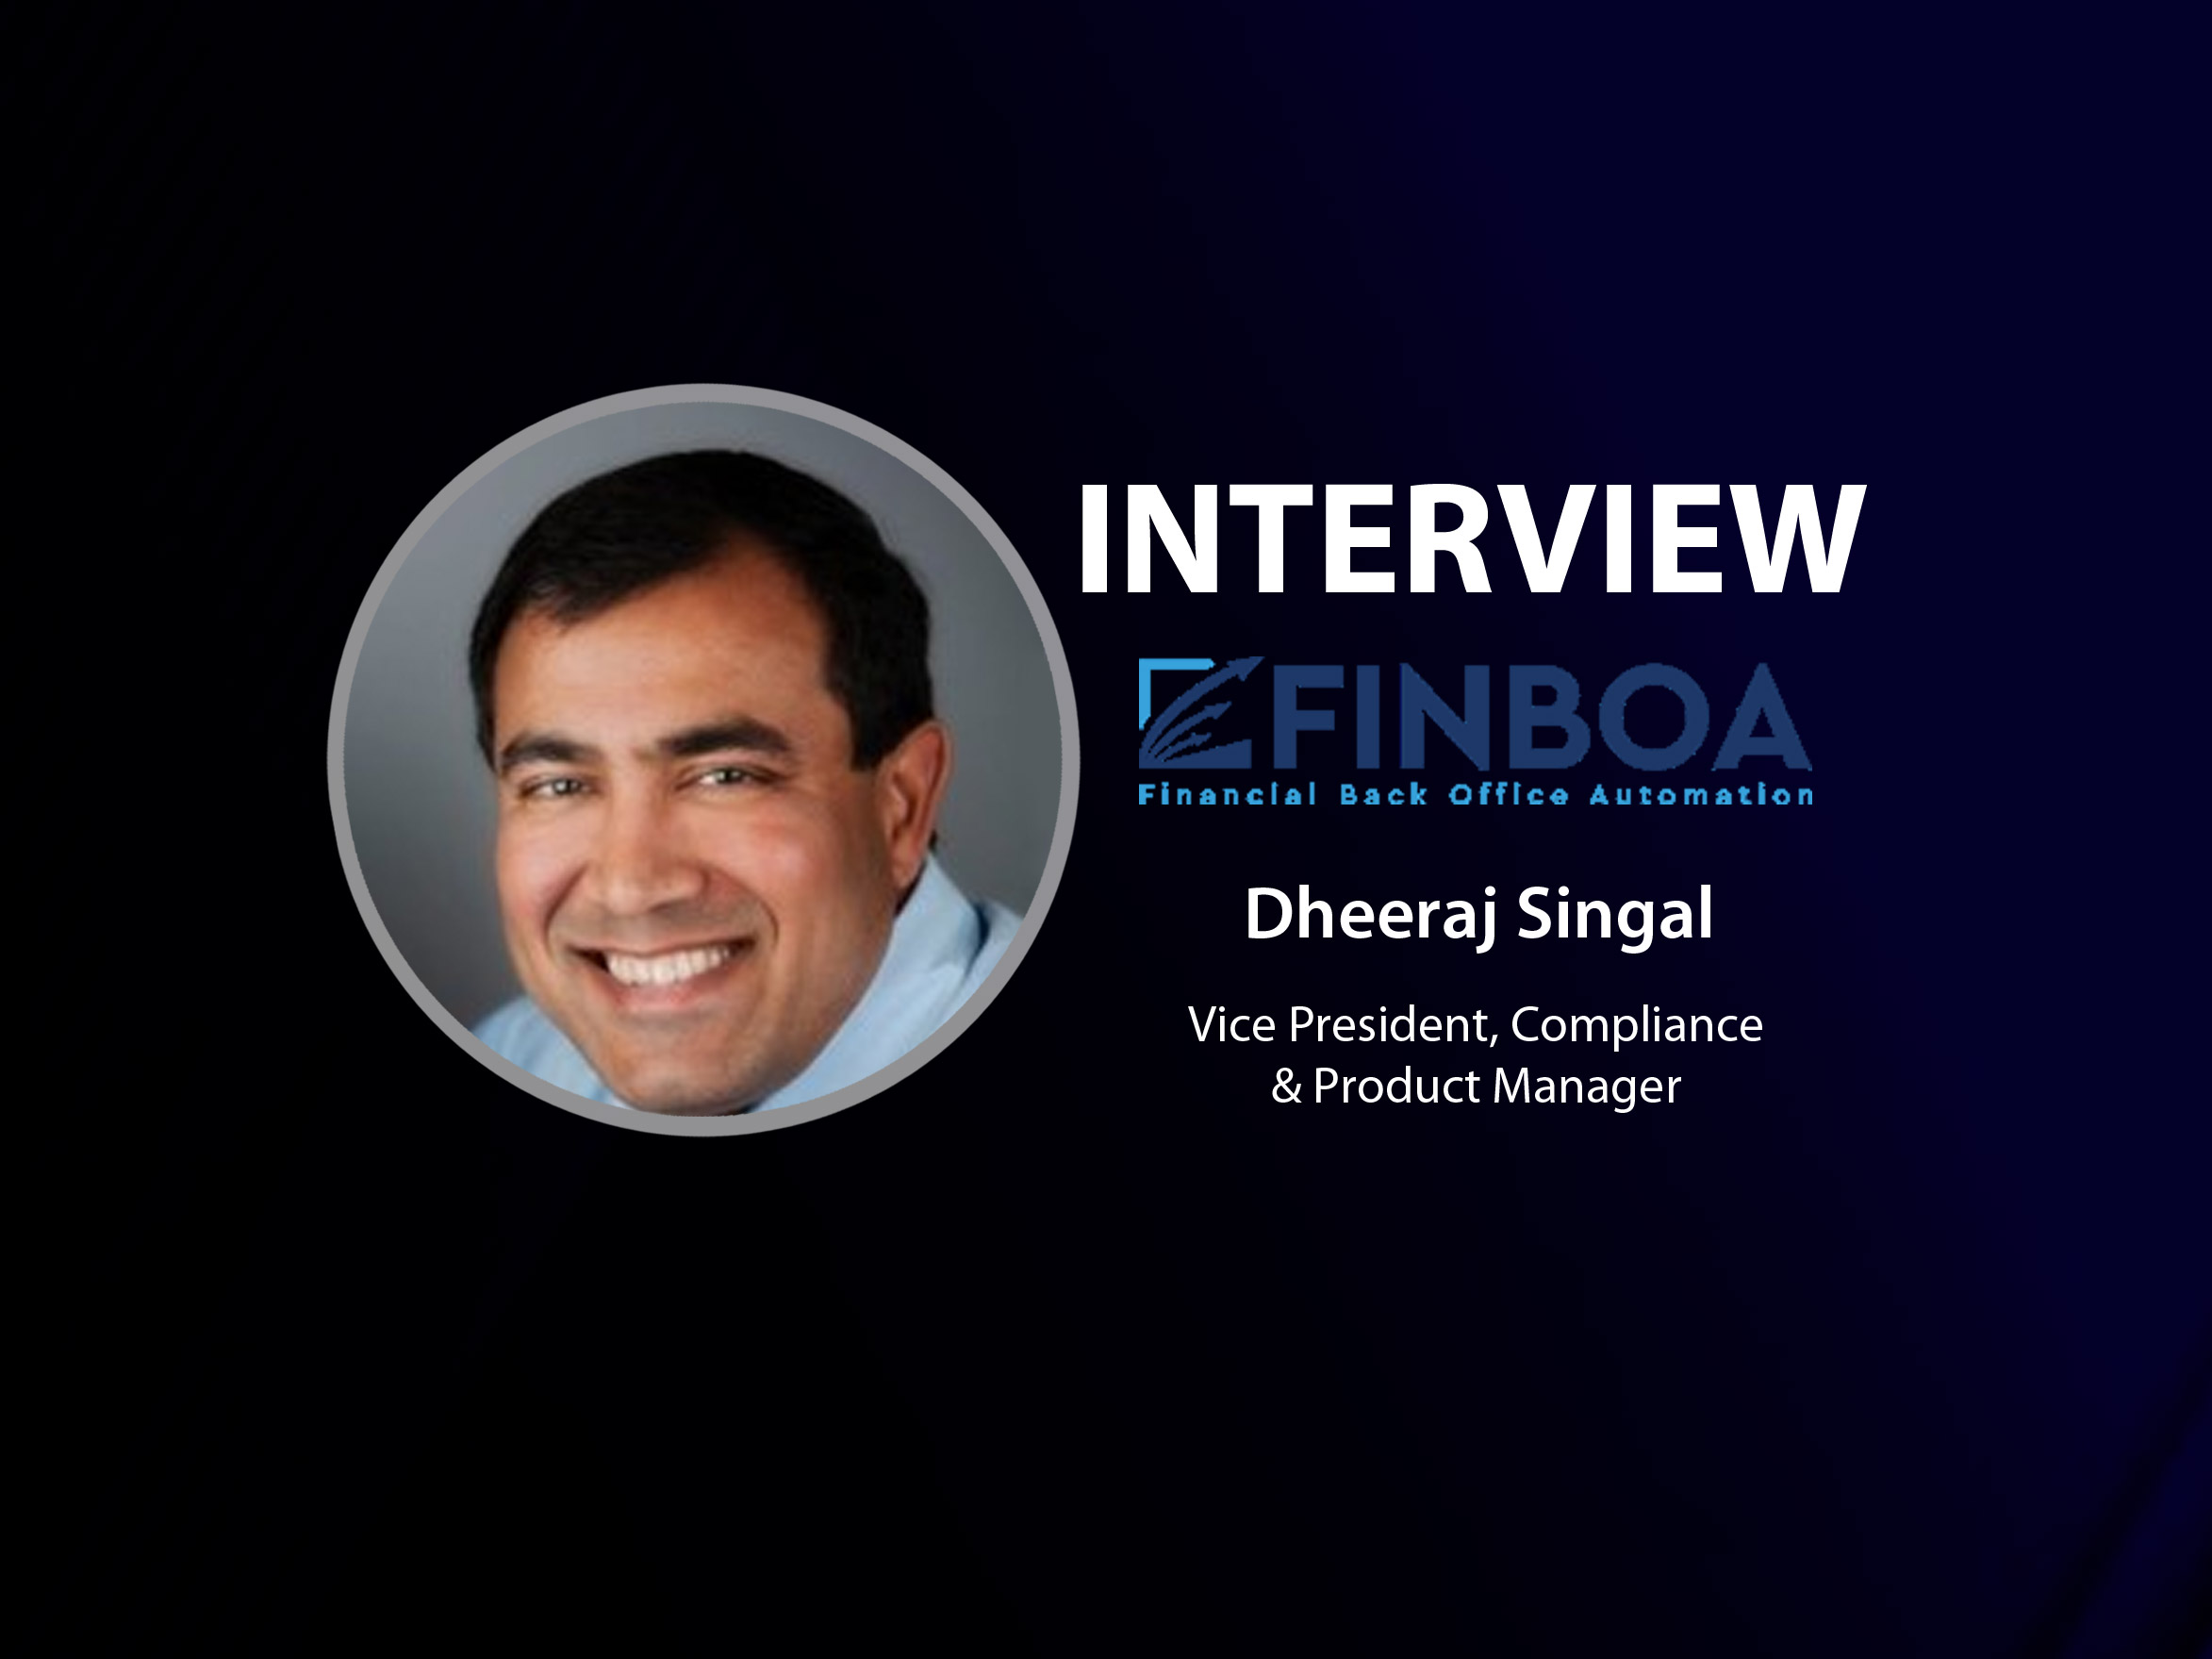 GlobalFintechSeries Interview with Dheeraj (Raj) Singal, Vice President, Compliance & Product Manager at FINBOA